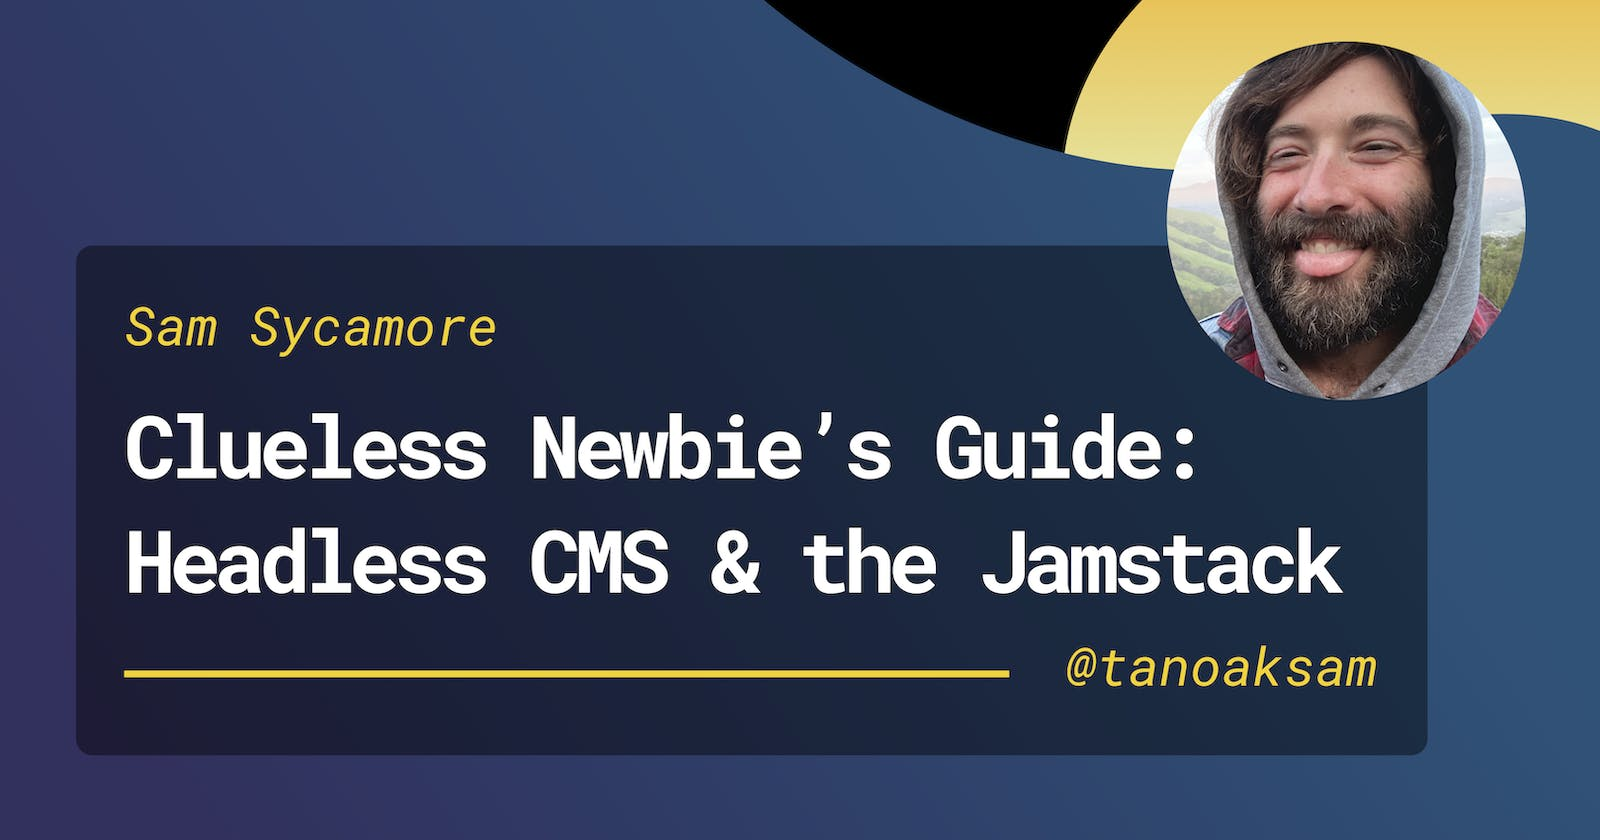 A Clueless Newbie's Guide to Headless CMS & the Jamstack